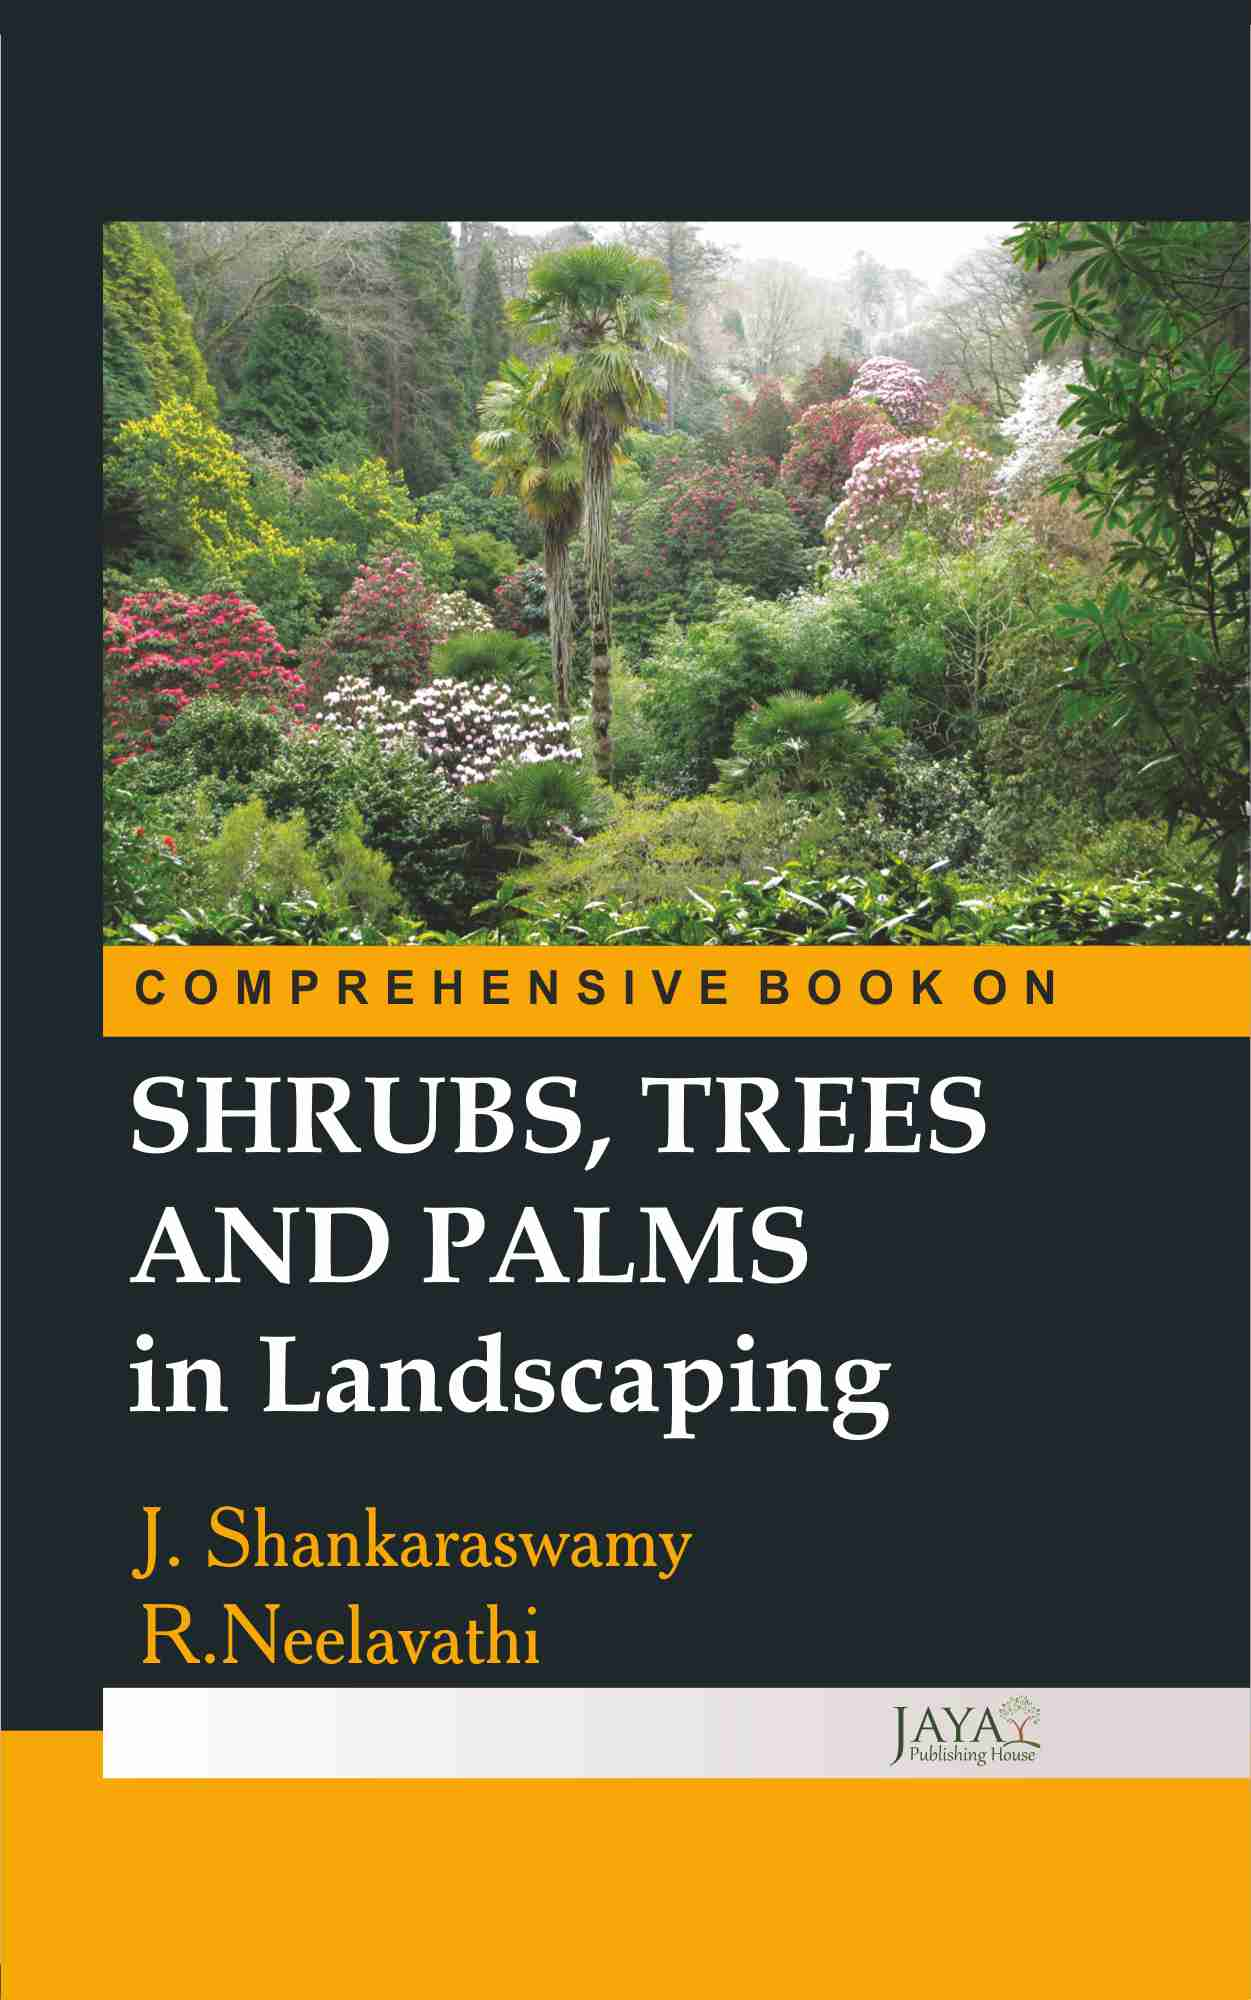 Comprehensive Book on Shrubs, Trees & Palm in Landscaping